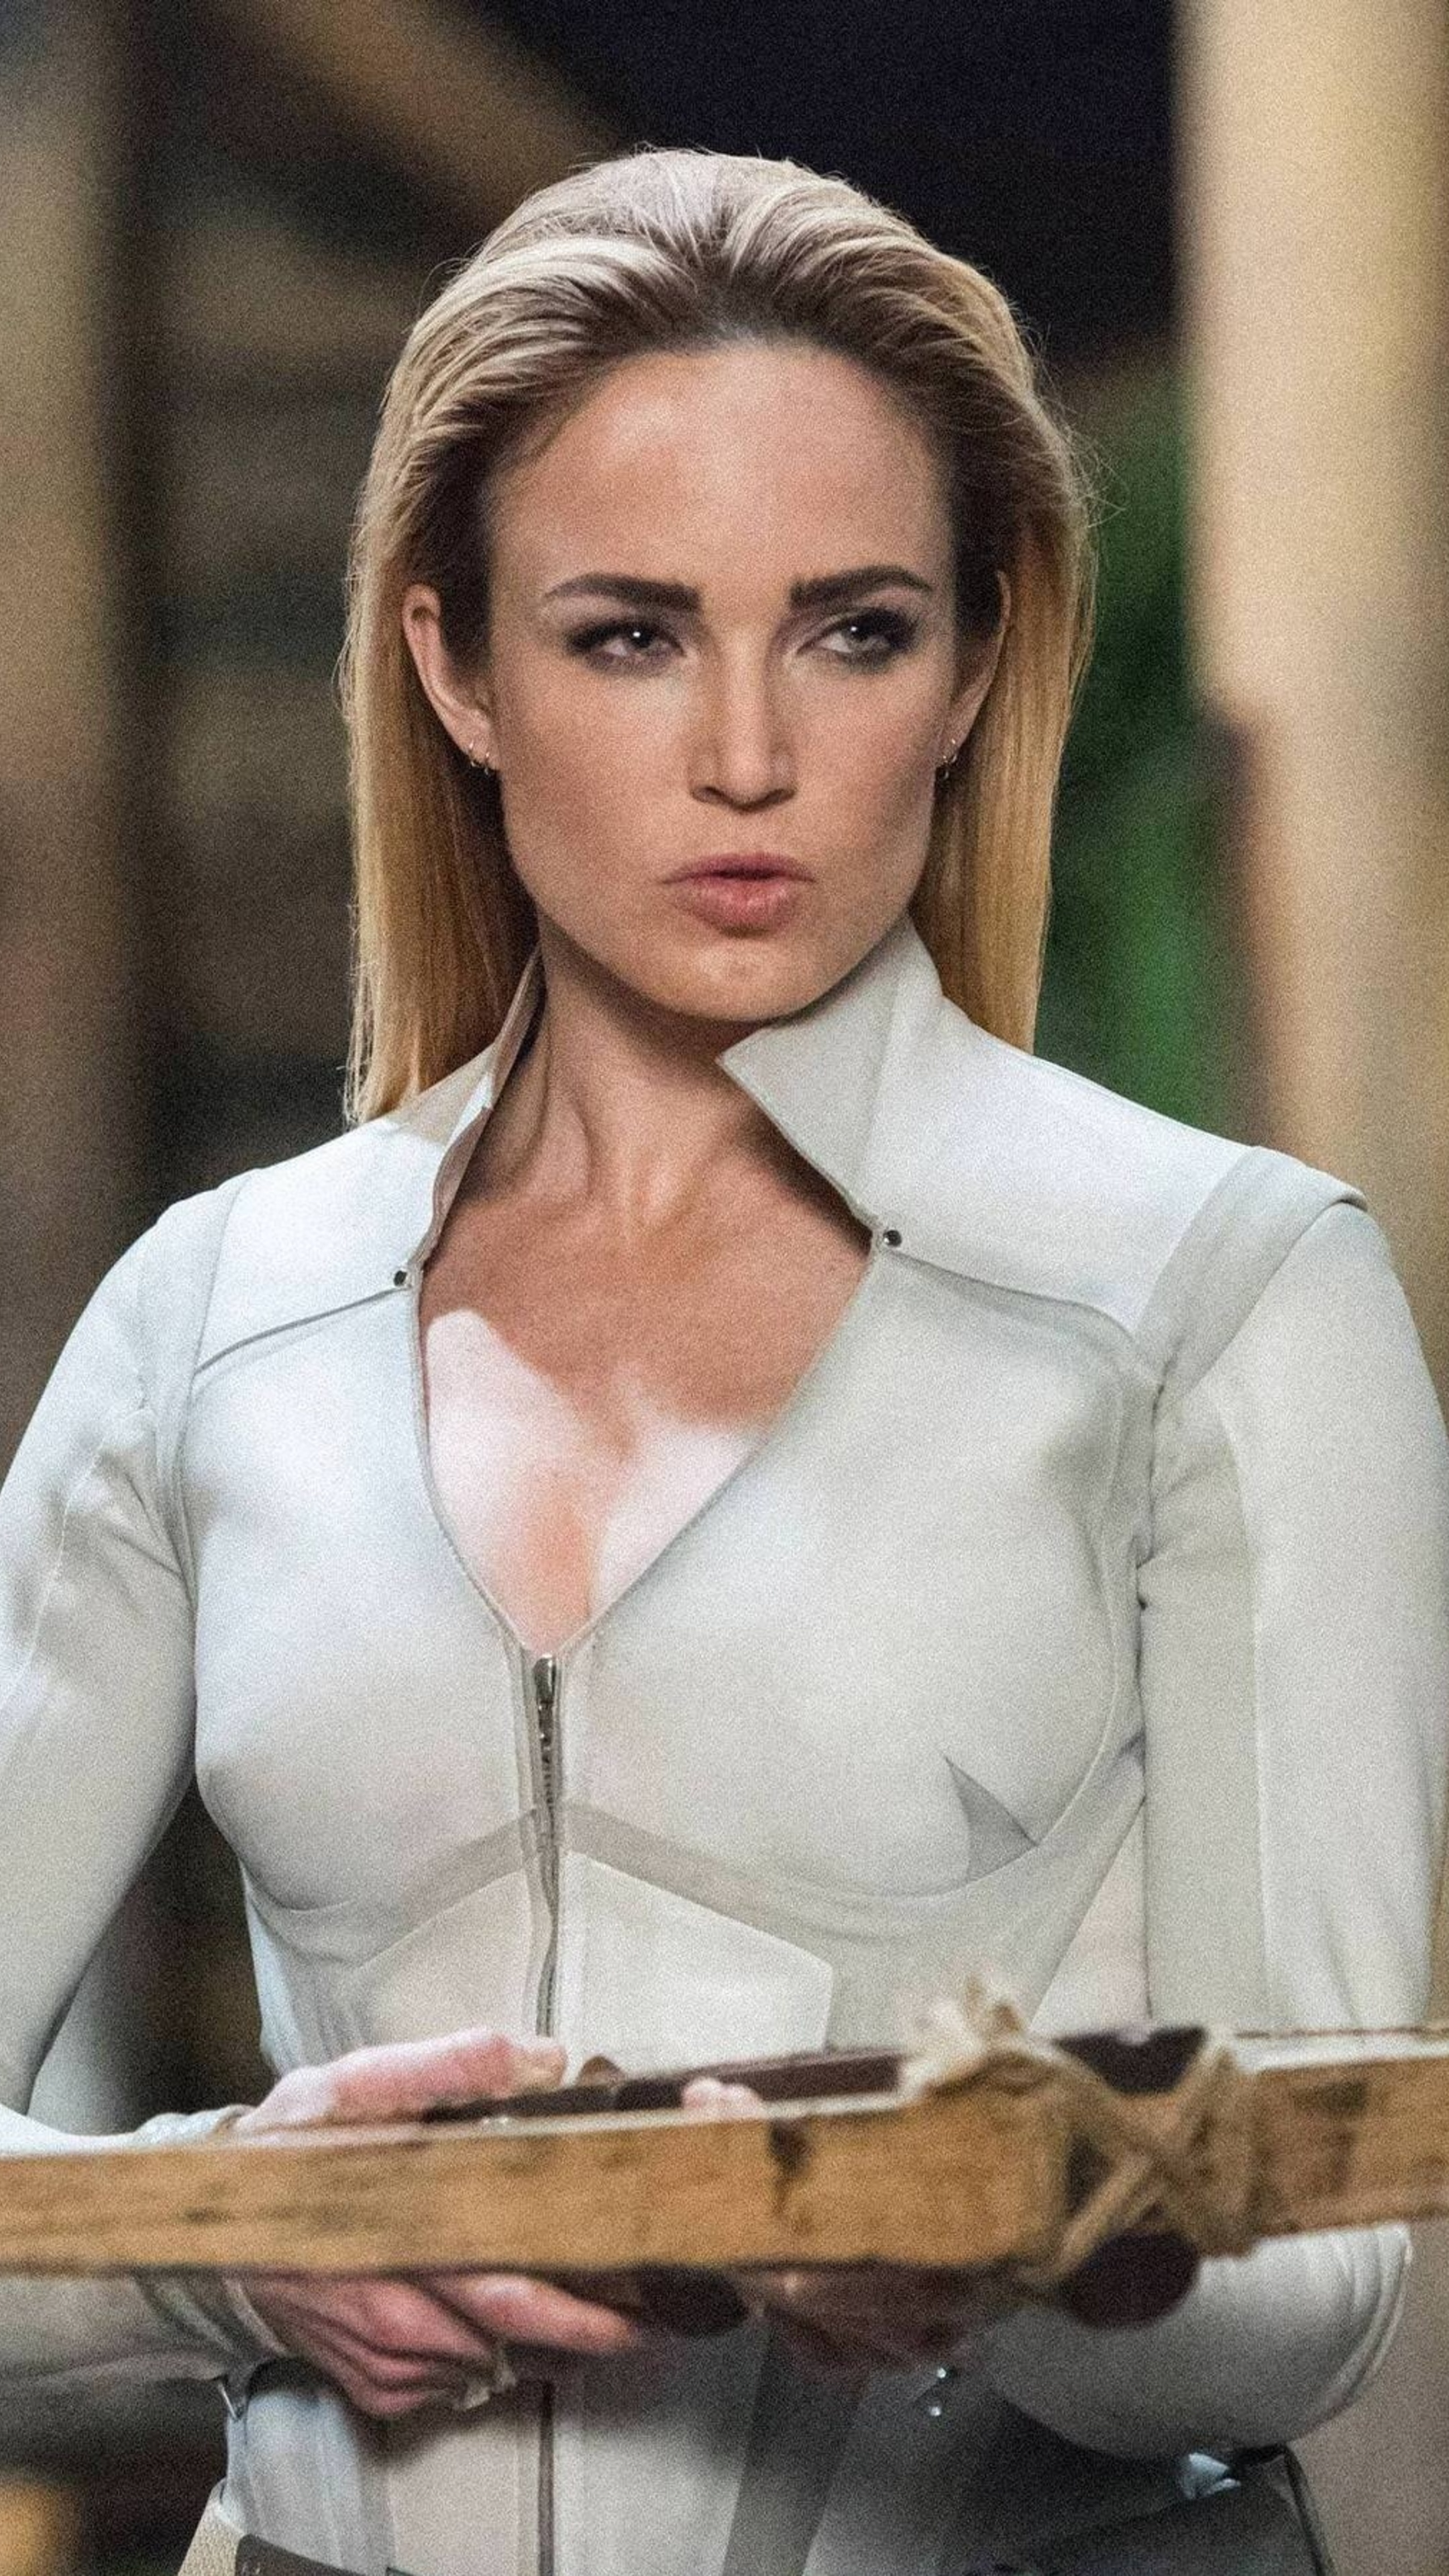 Caity Lotz nudes (29 foto and video), Pussy, Hot, Selfie, butt 2015